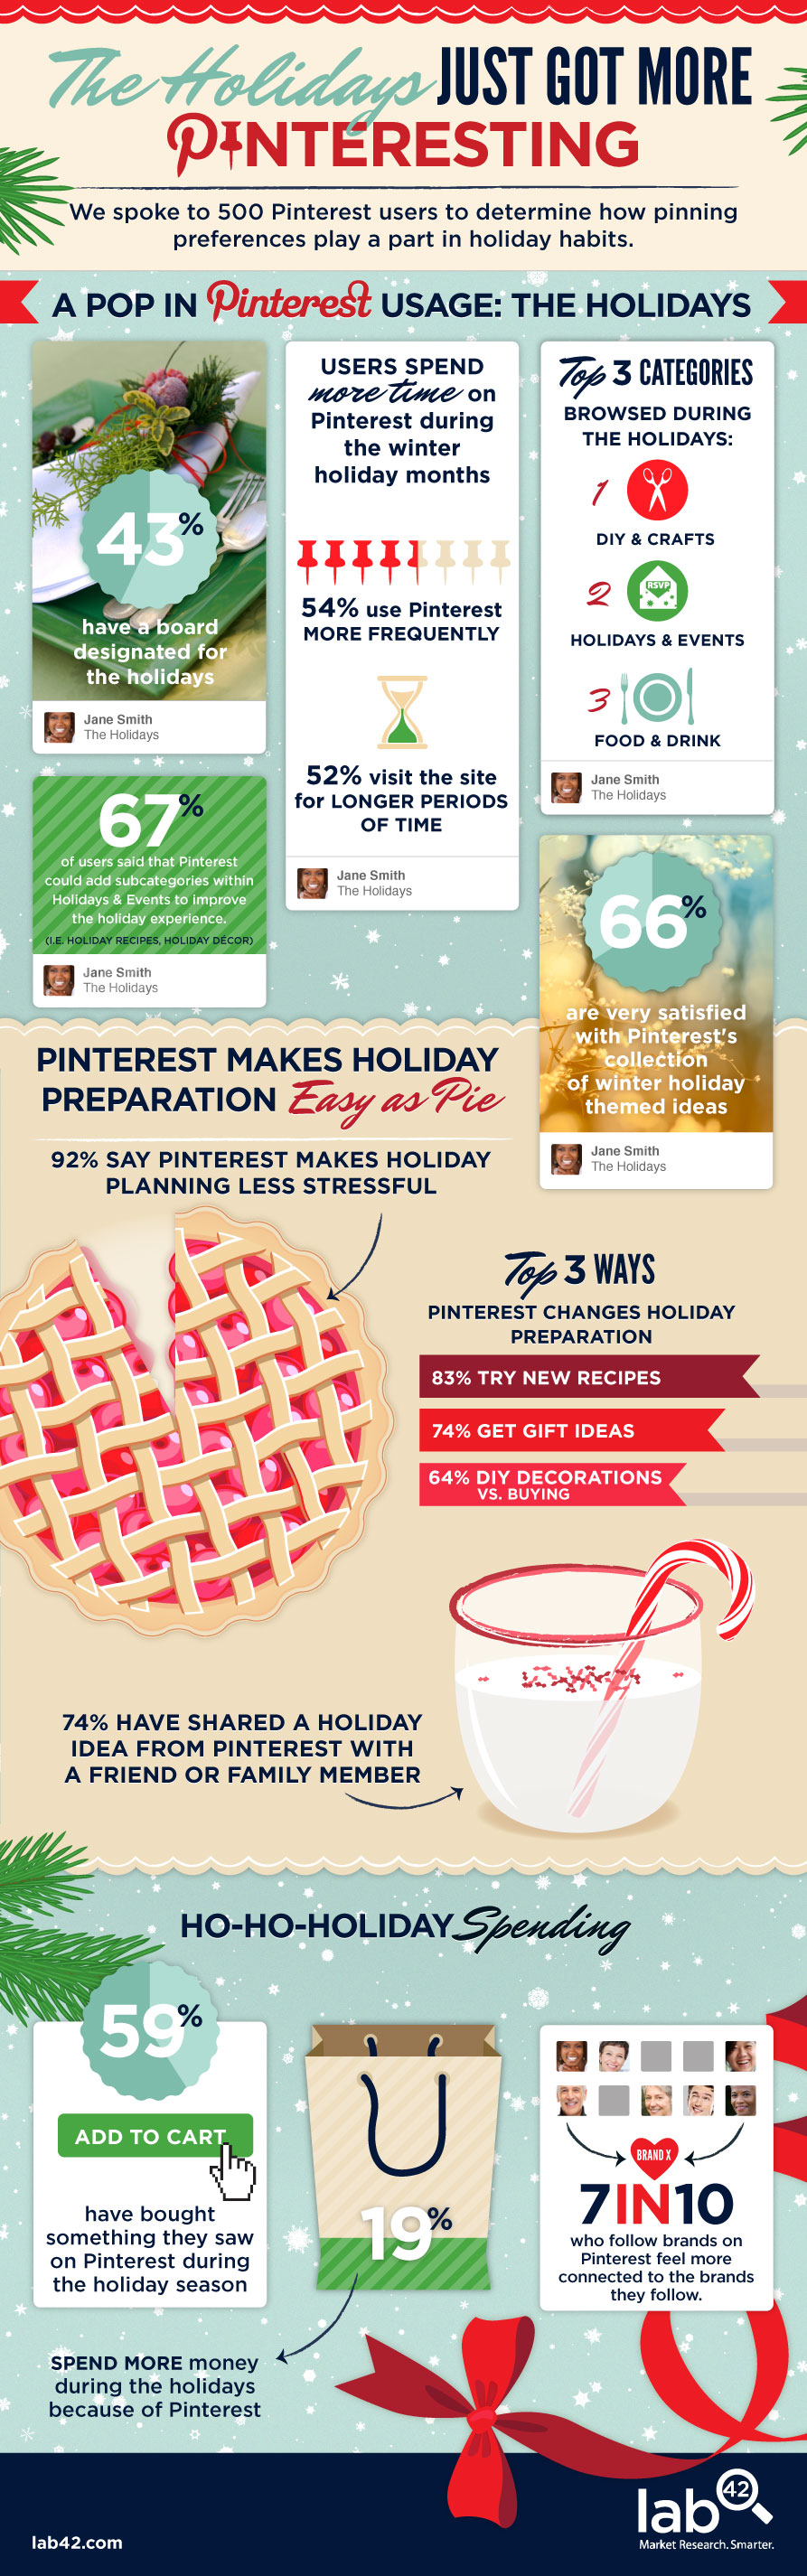 pinterest for holiday shopping